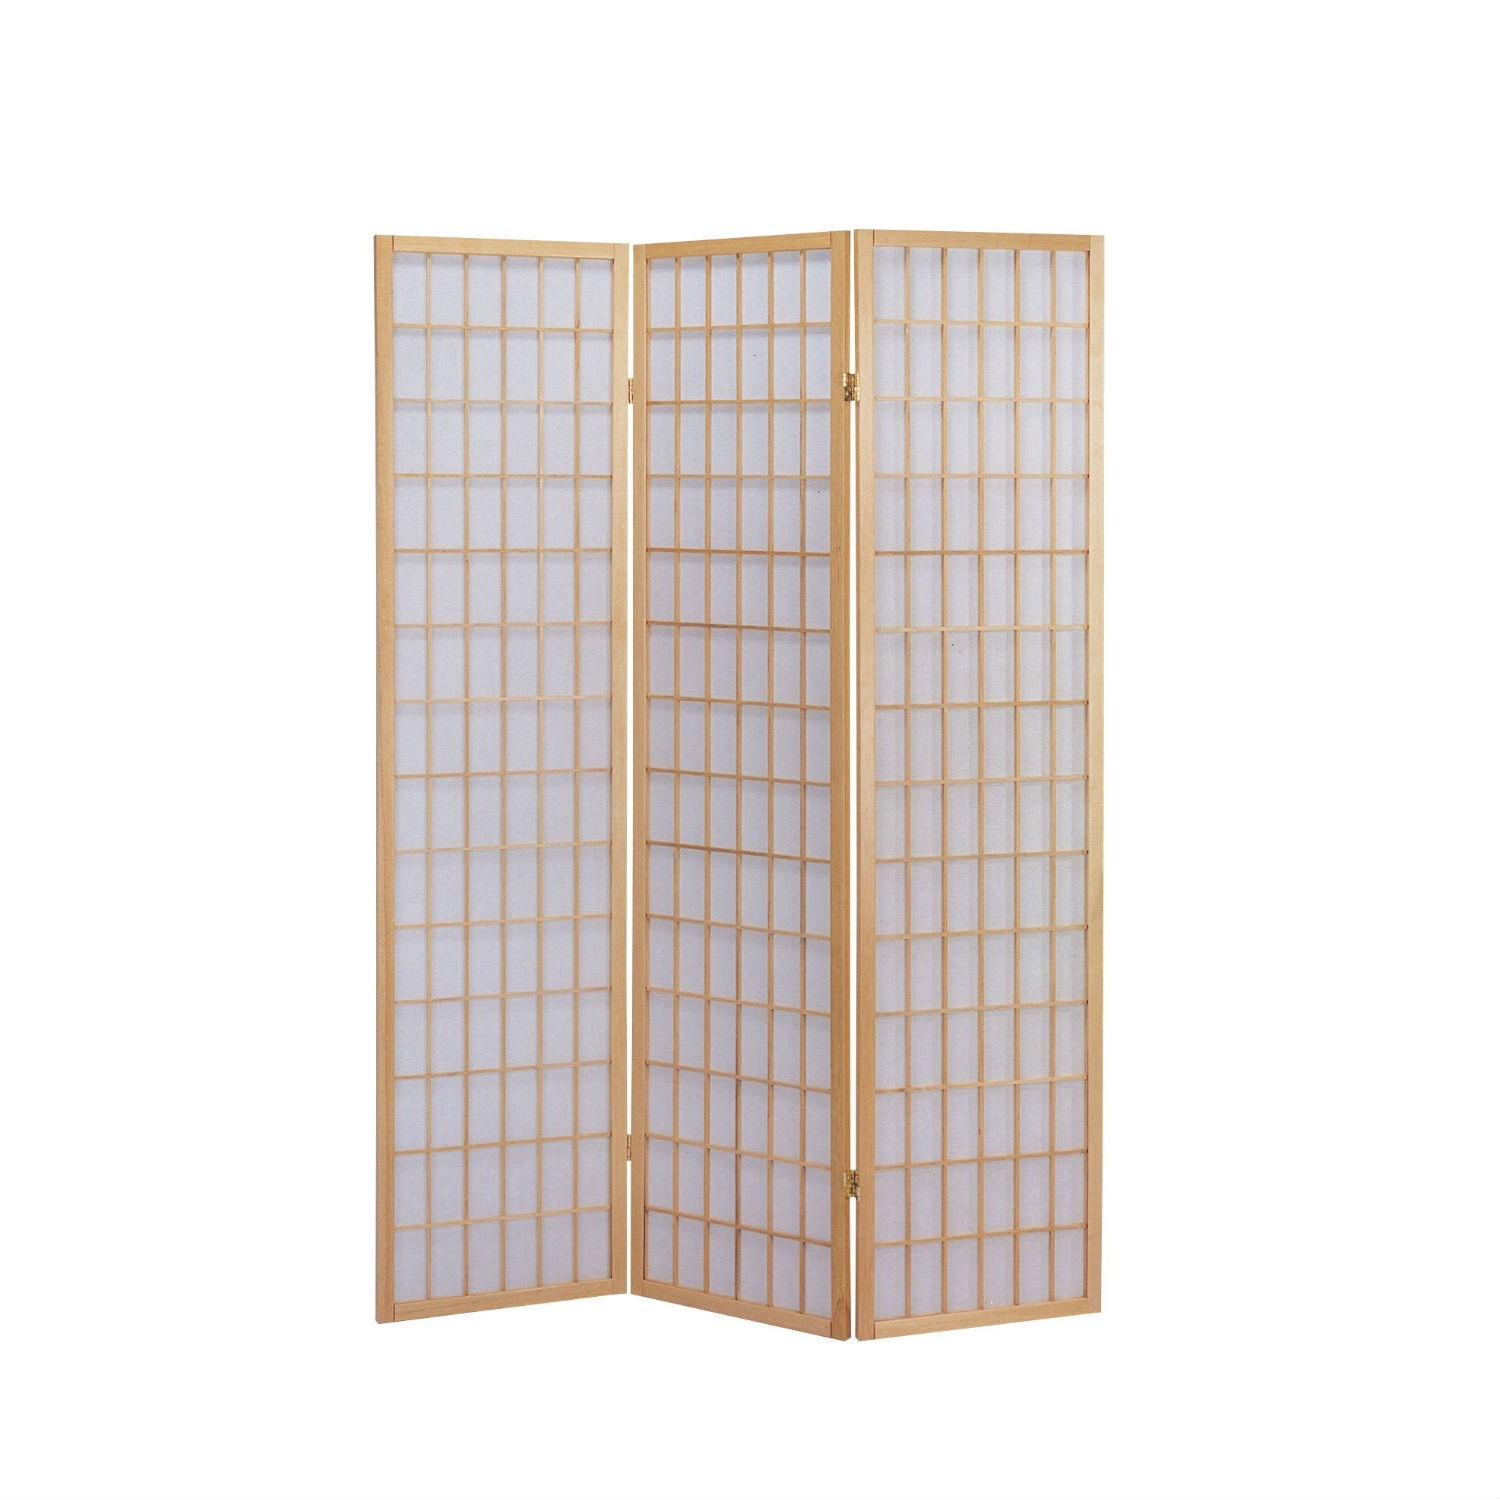 3-Panel Wooden Room Divider Japanese Shoji Screen in Natural, ANS469043 :  This 3-Panel Wooden Room Divider Japanese Shoji Screen in Natural is a simple and elegant way to divide a room. This item is made of quality and structure for you to enjoy it for years to come. This beautiful screen is perfect for your home. It will draw plenty of wanted attention to your living space while creating the desired separation that you crave. Define space and create privacy with this 3-Panel Wooden Screen Screen. Available in 3 finish; black, cherry and natural. Make this item part of your home decor today!